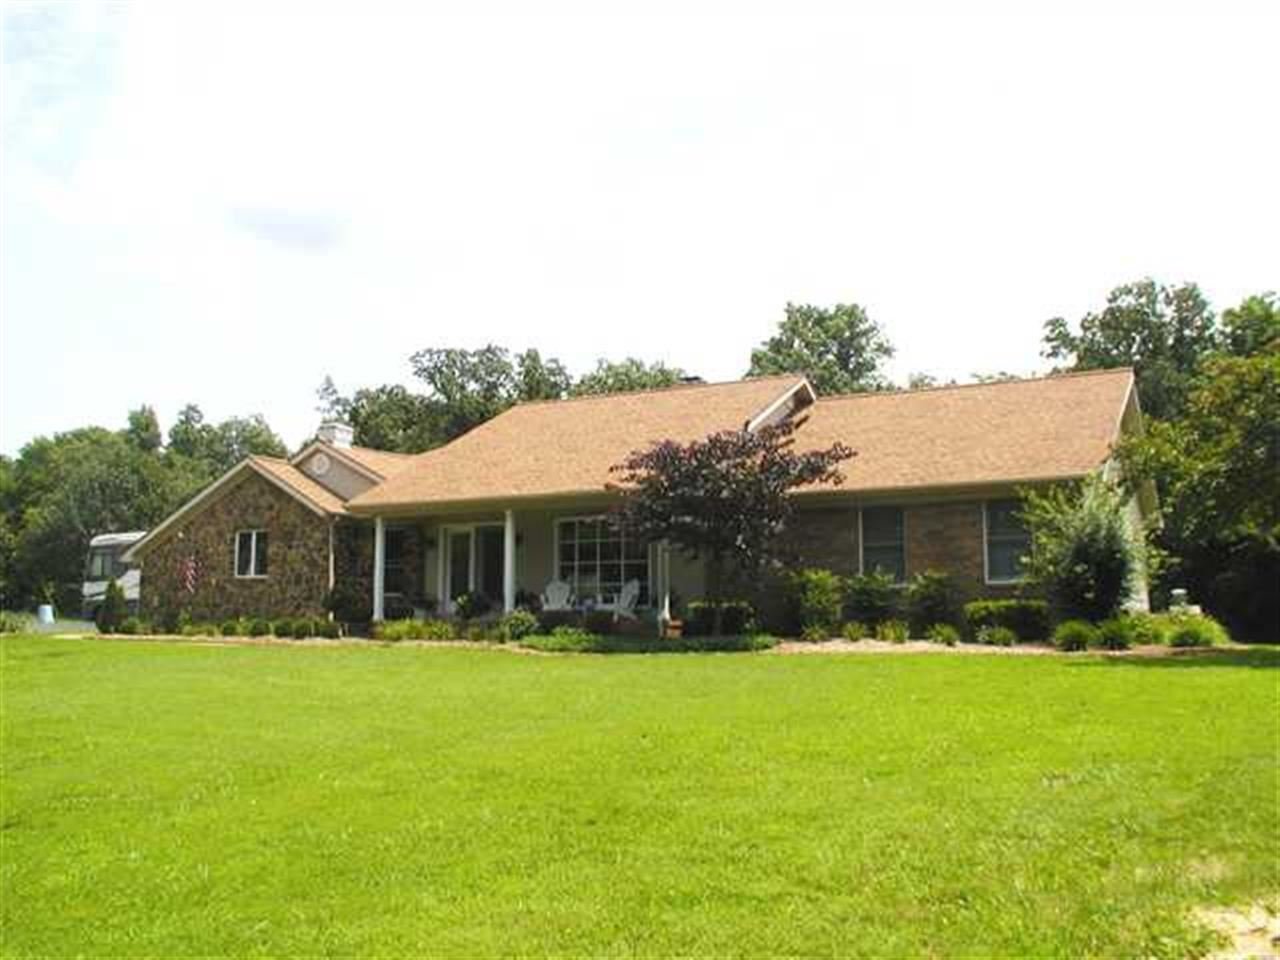 2.45 acres in Benton, Kentucky